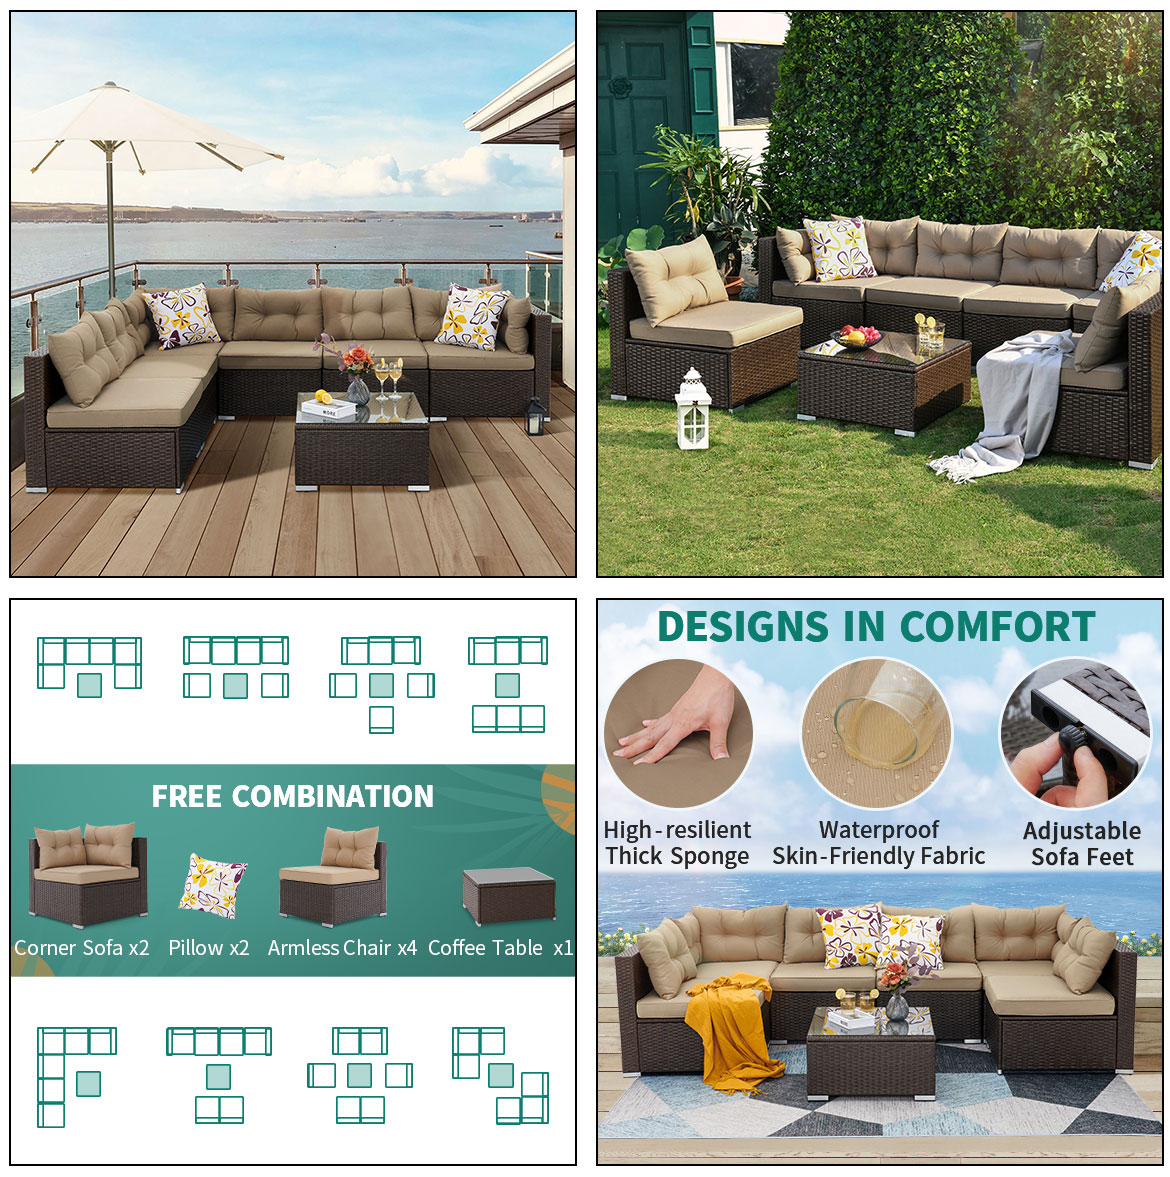 new design outdoor furniture sets with free combination